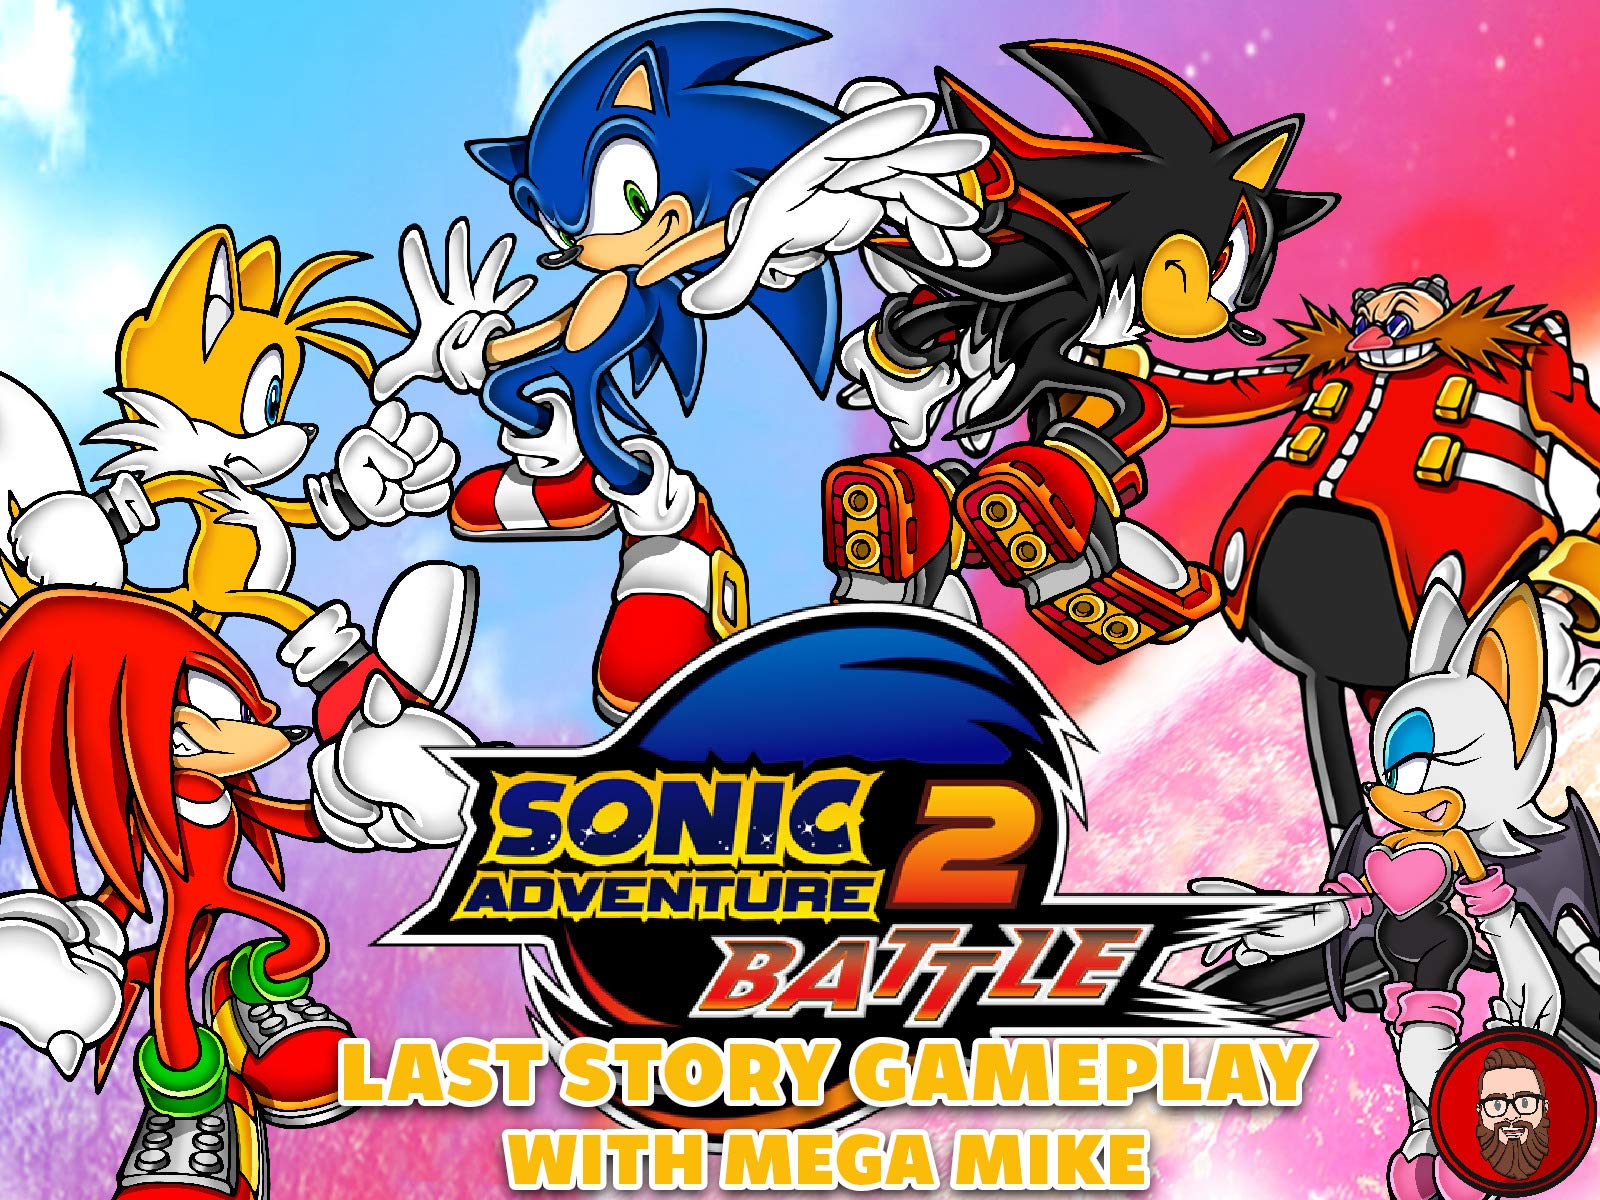 Watch Sonic Adventure 2 Battle Last Story Gameplay With Mega Mike